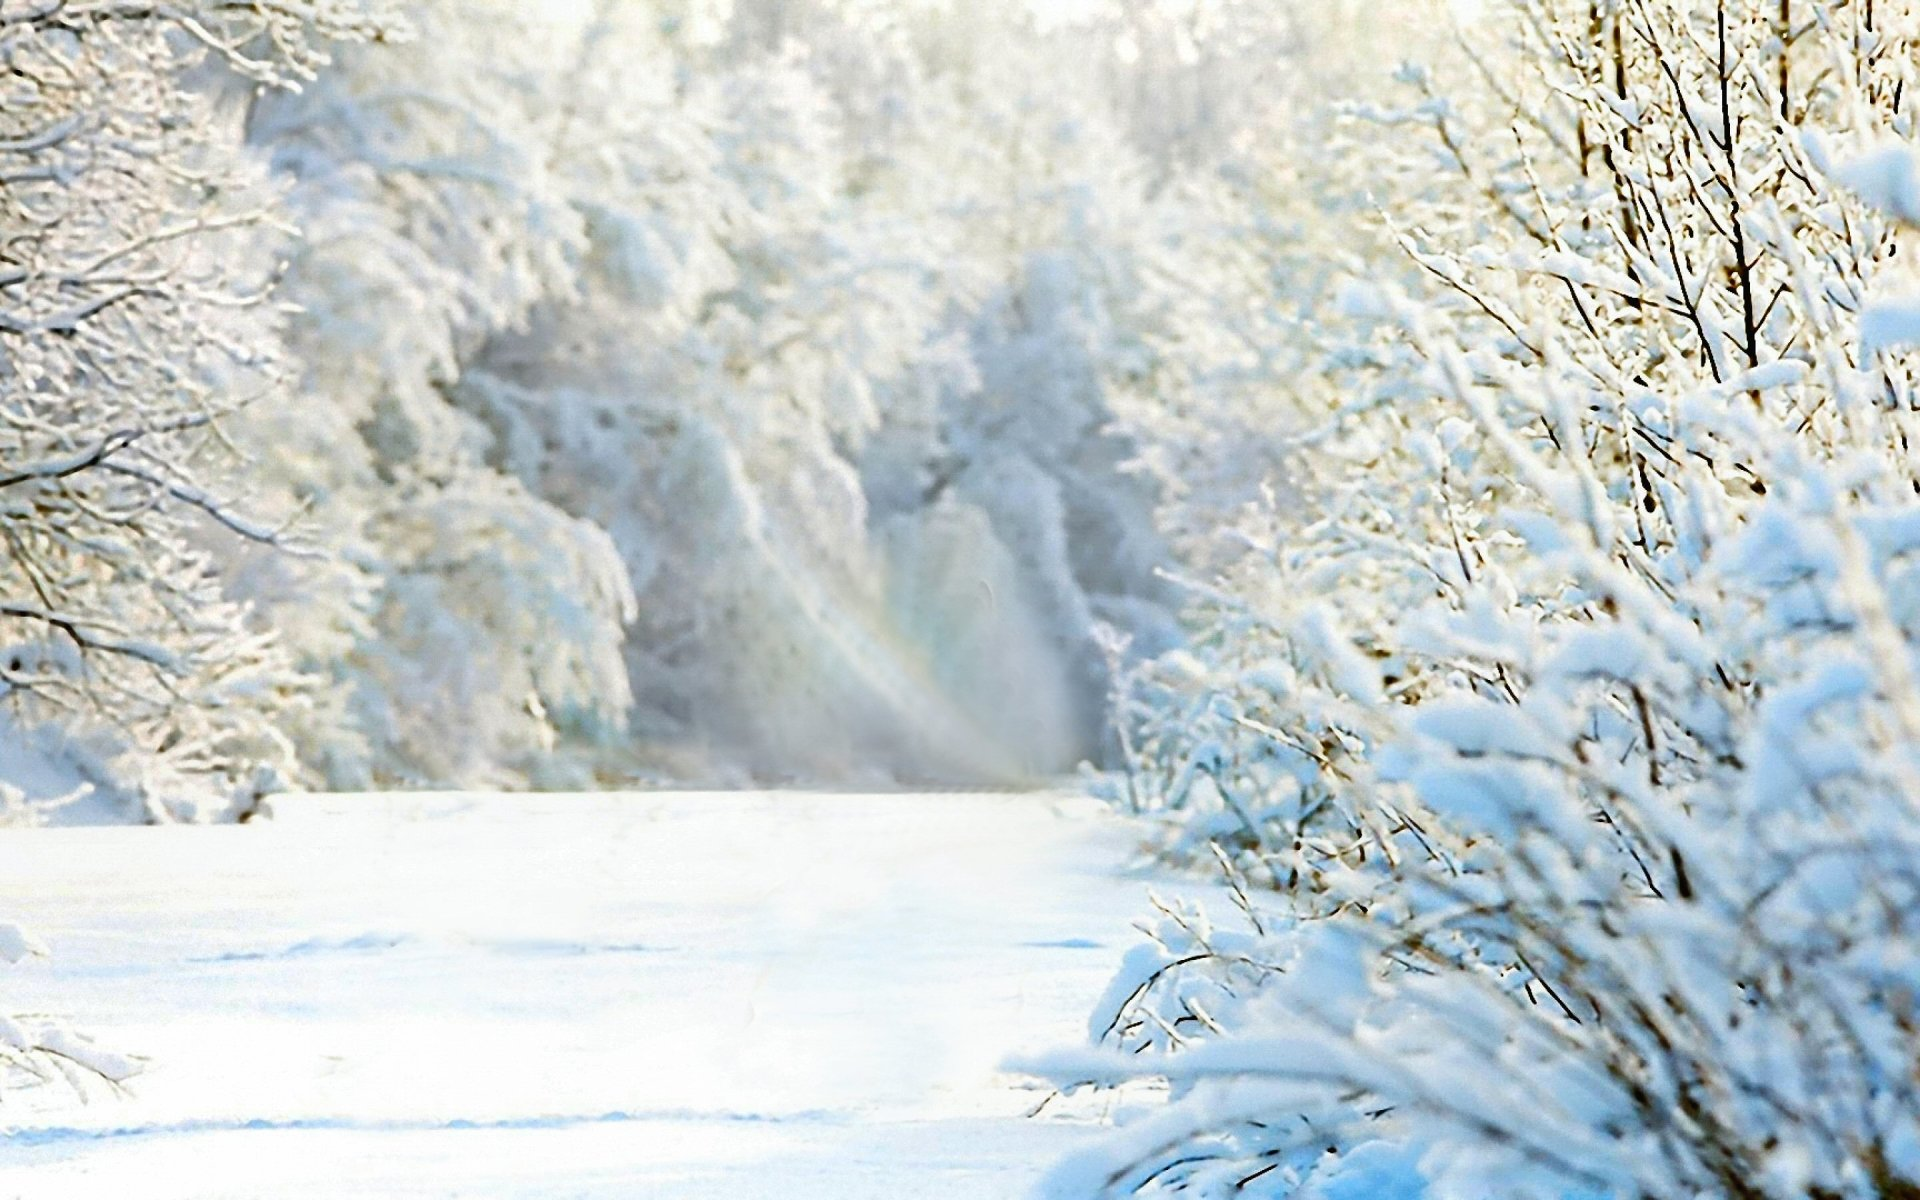 Earth - Winter  Scenic Nature White Snow Tree Wallpaper